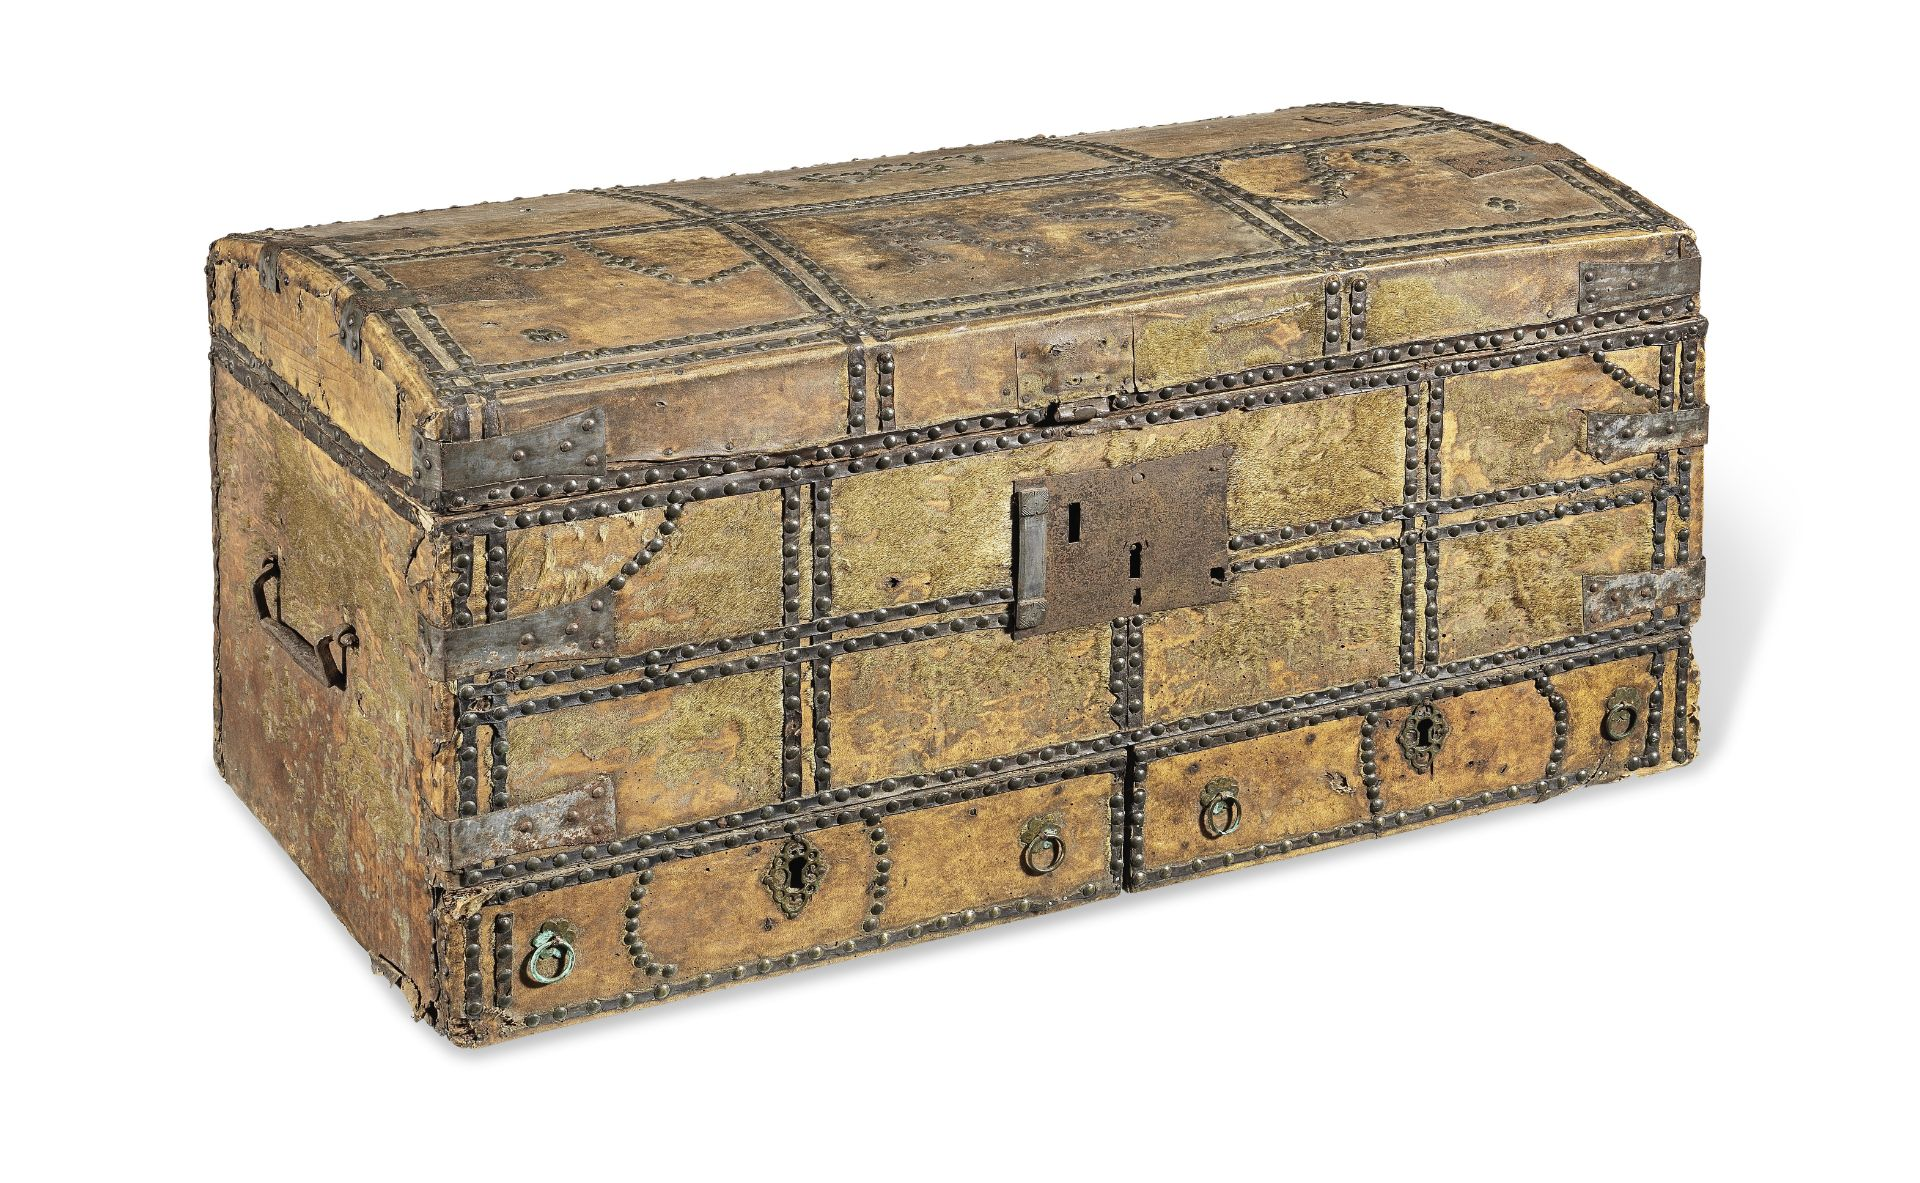 Los 280 - A late 17th century pig-skin covered chest, with drawer, dated 1697